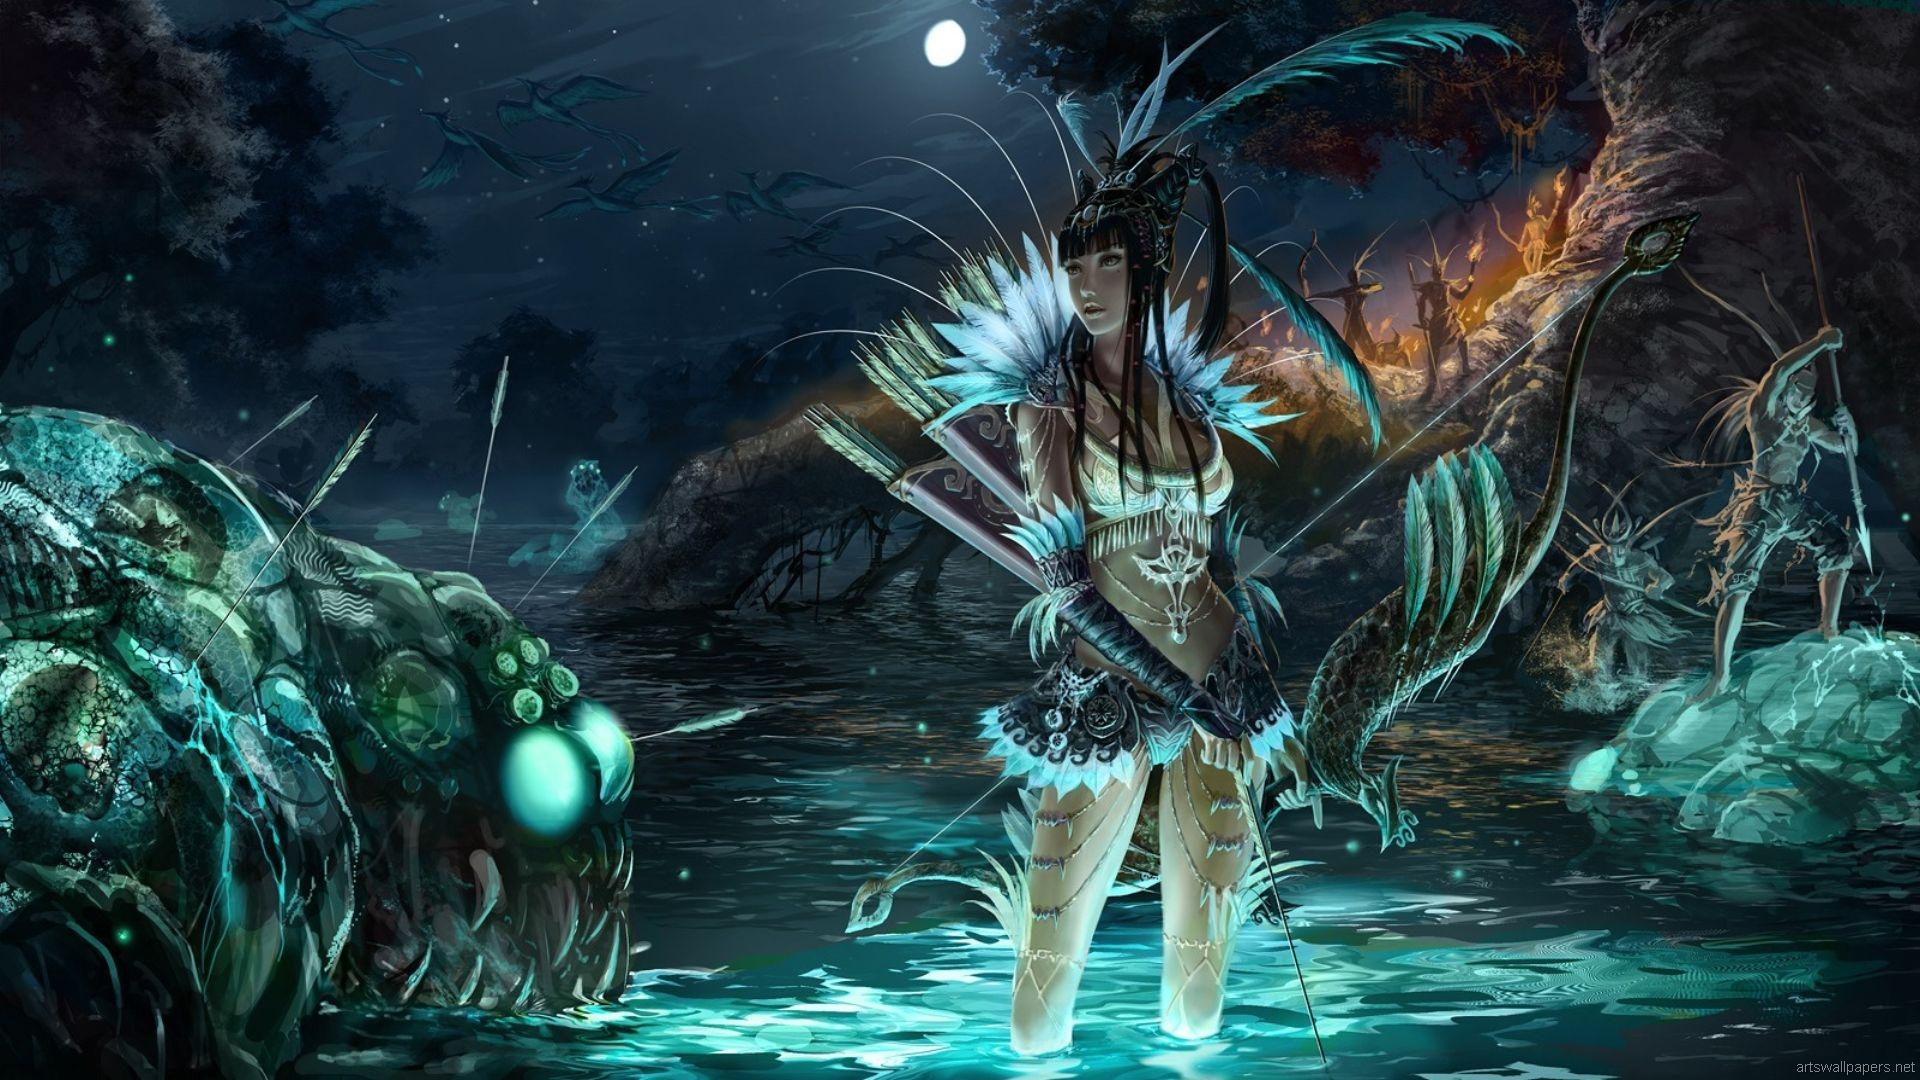 Anime Inspired Hd Fantasy Wallpapers For Your Collection: Anime Fantasy Wallpaper